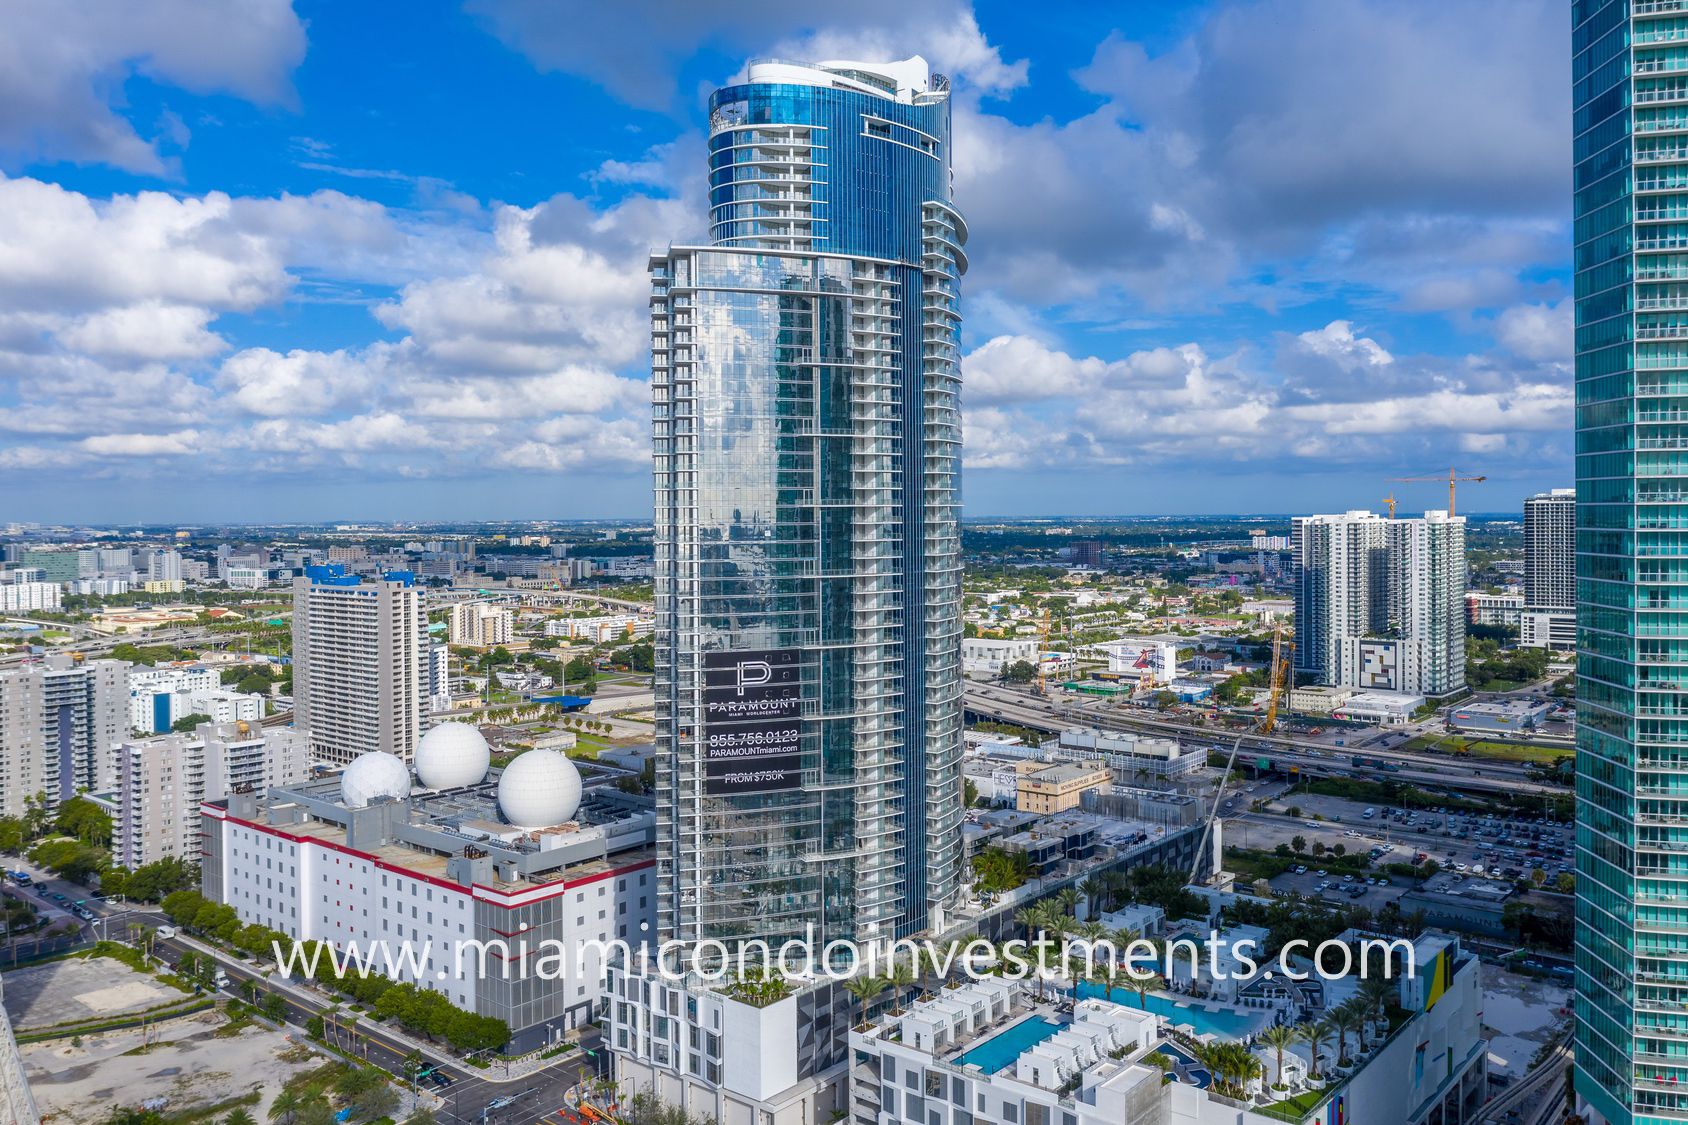 Paramount Miami Worldcenter aerial photo